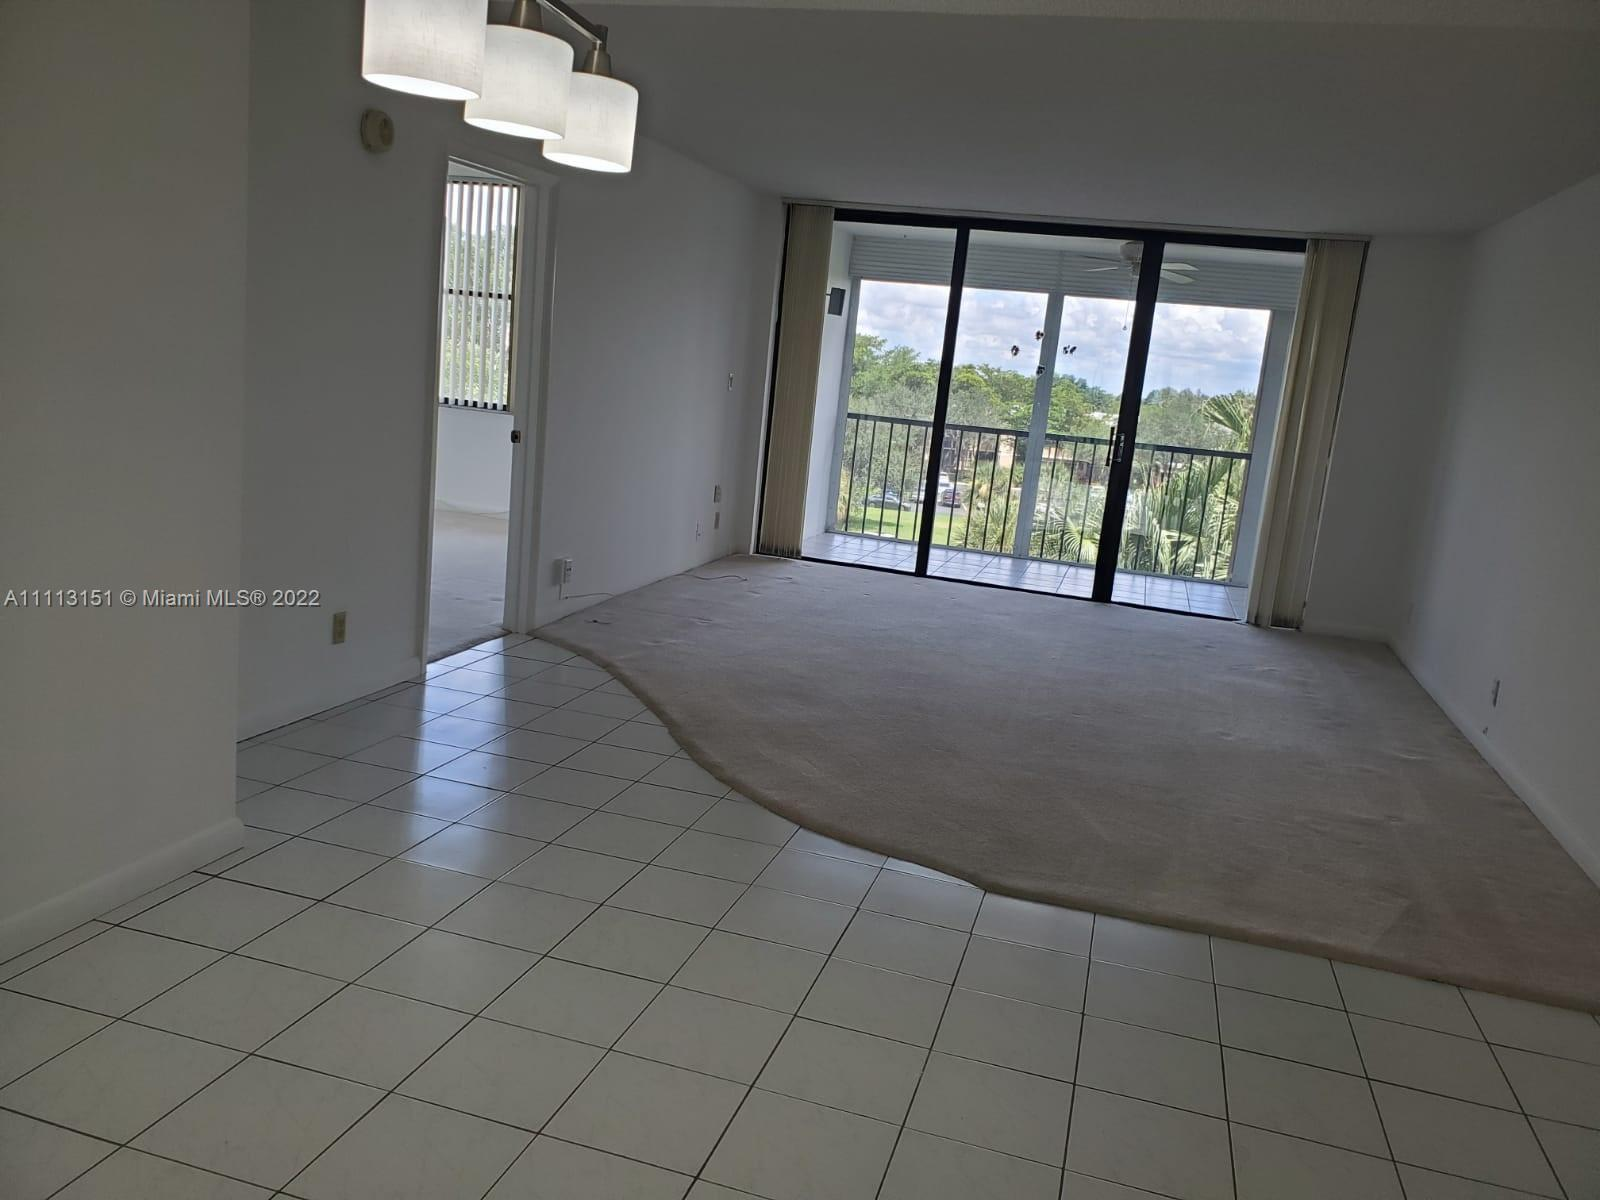 Beautiful move-in ready condo. Close to Weston Town Center. Security 24 hours a day, 7 days a week on site. Great family place with great schools and parks close by. On the fifth floor of a seventh-floor building. Large balcony, washer and dryer inside the unit. Water and garbage collection included in the association fees. Pool, tennis courts and Club House. The association requires a minimum credit score of 650. Combined income of $ 65,000.00 per year. Owner is responsible for an additional $ 284.00 per year payable to Bonaventure Town Center Club. FIVE year waiting period to rent after new ownership. Monthly association fee $600.78. O